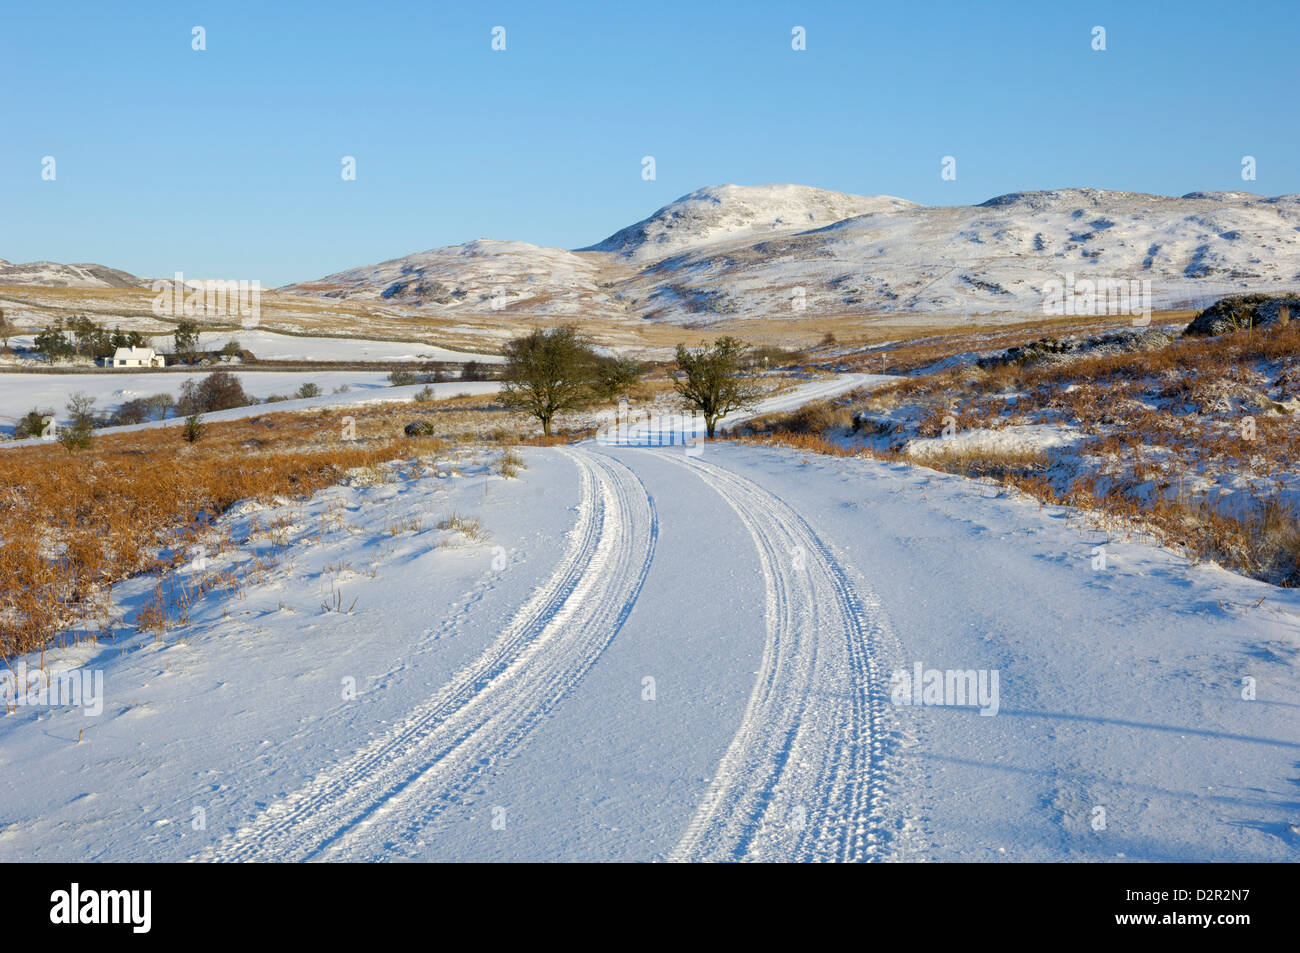 Road in winter snow, Dumfries and Galloway, Scotland, United Kingdom, Europe - Stock Image